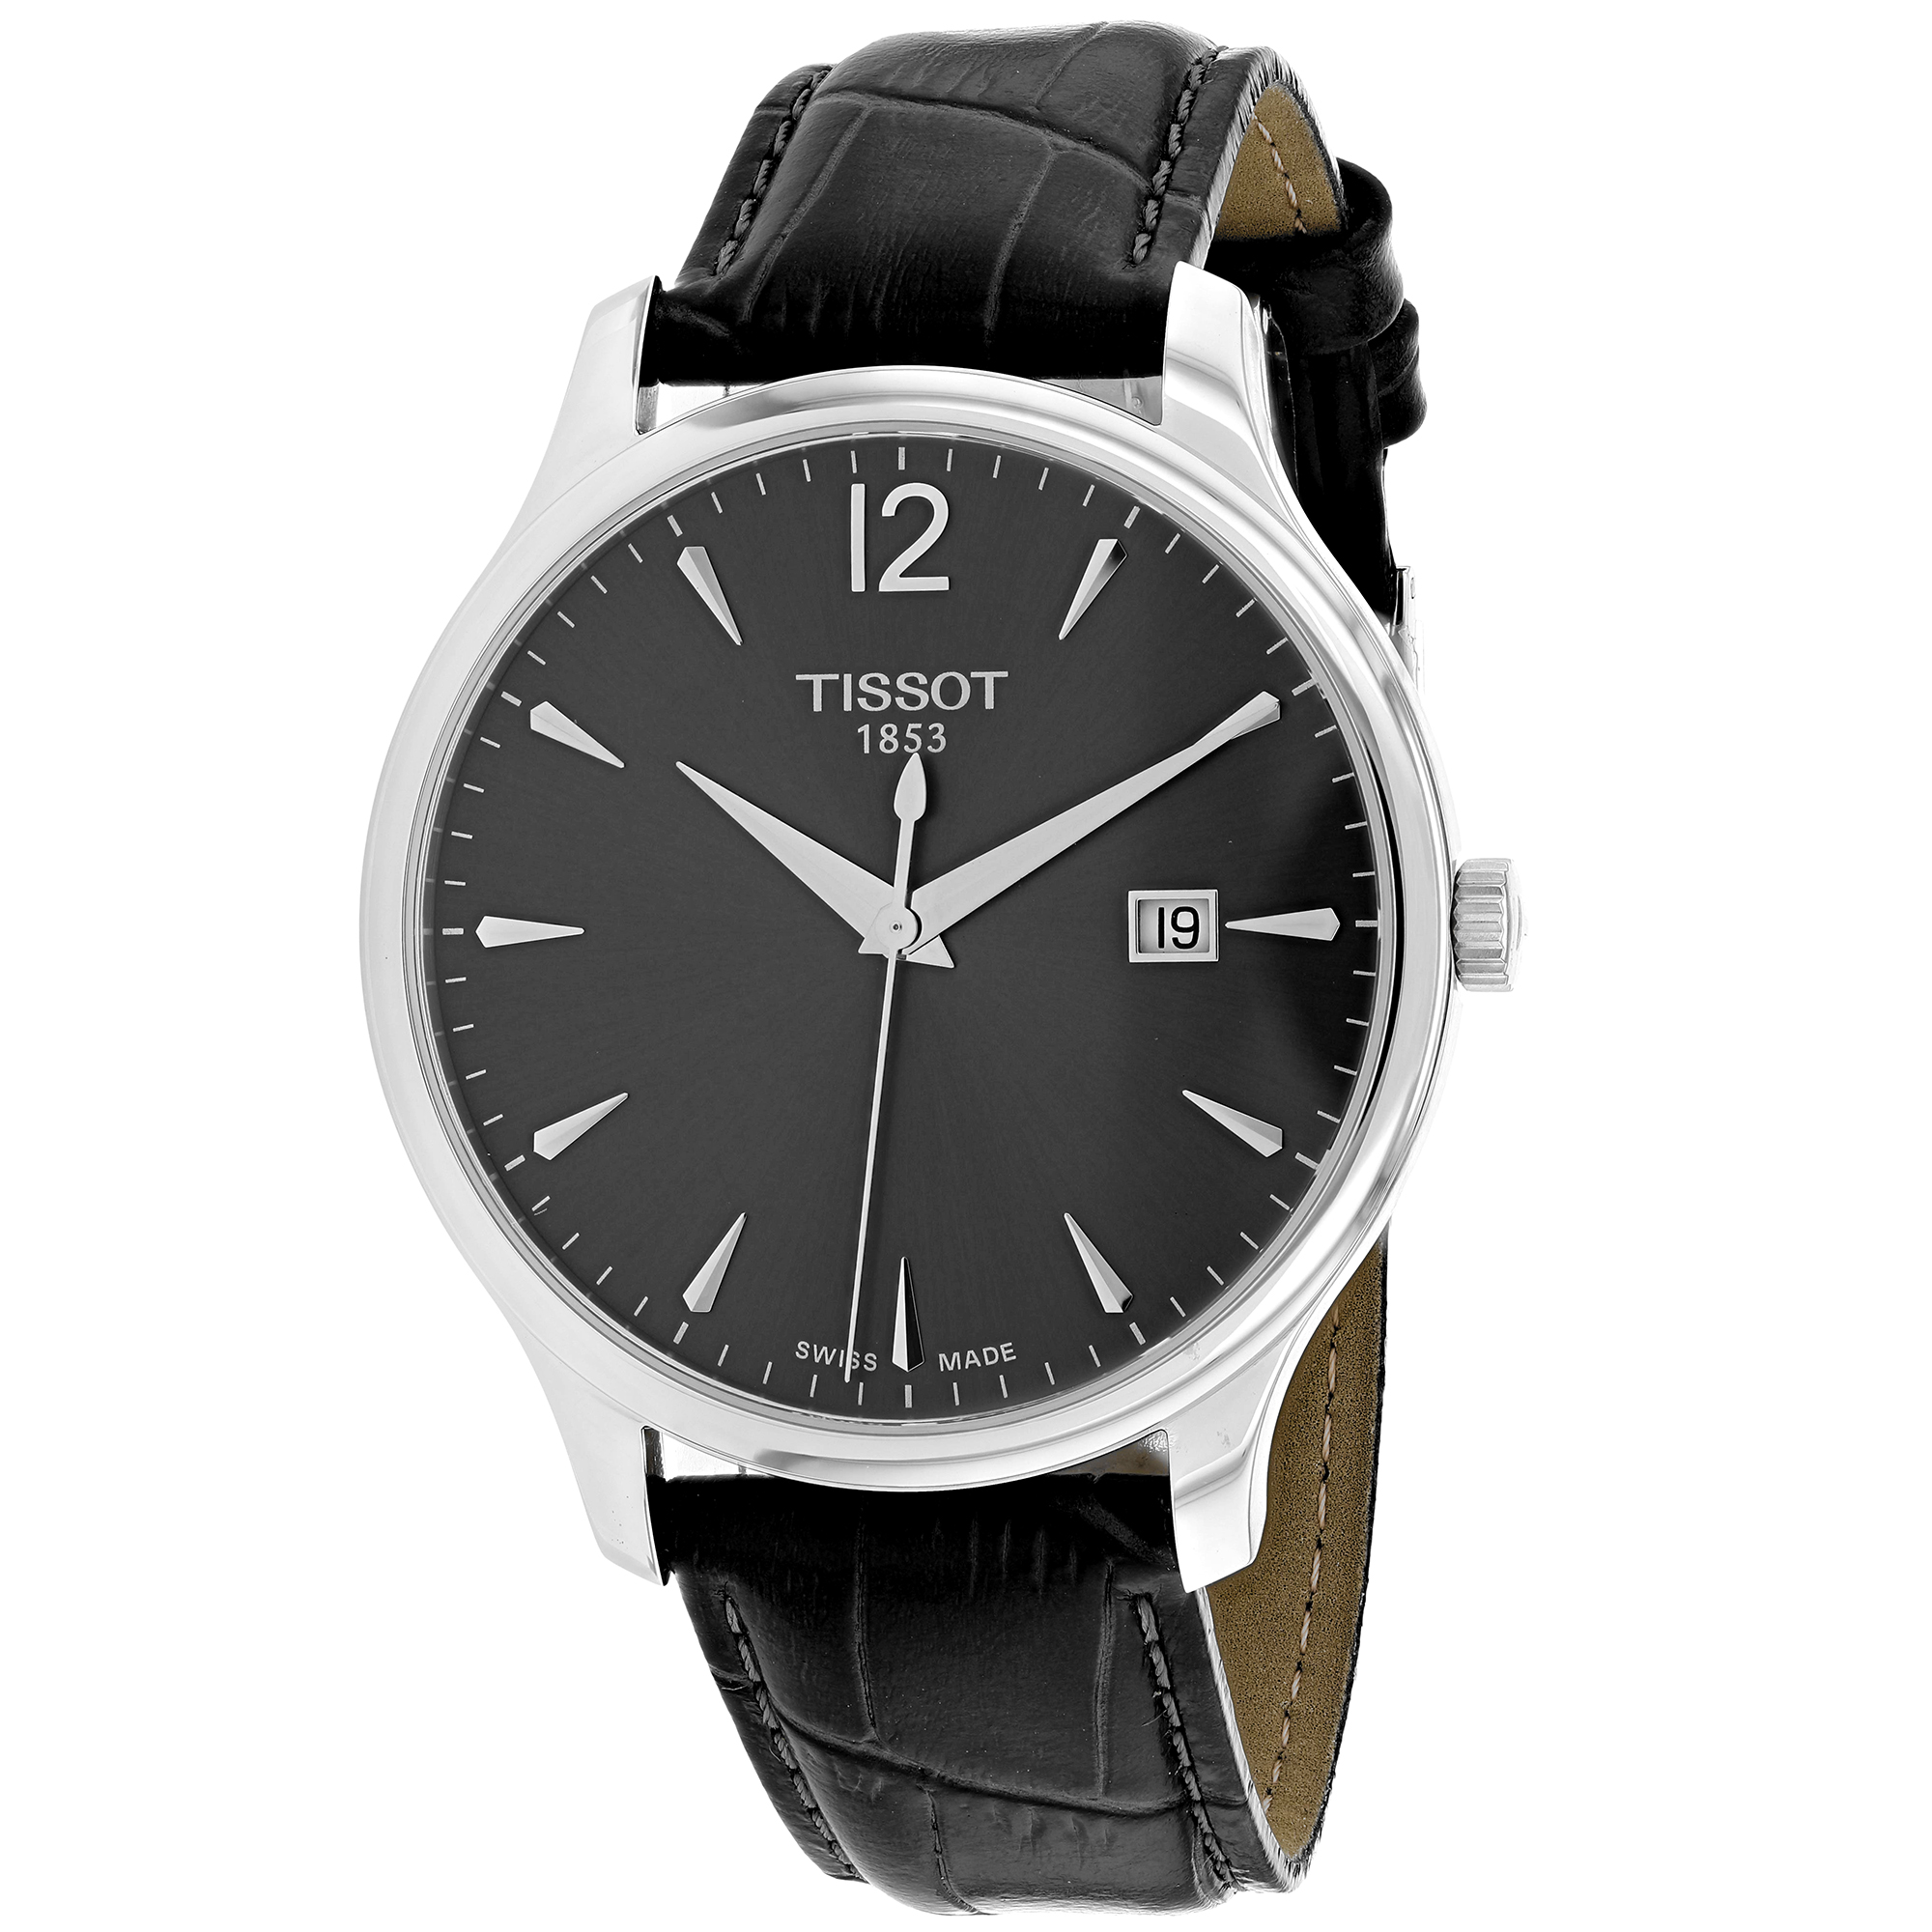 Tradition Watch by Tissot